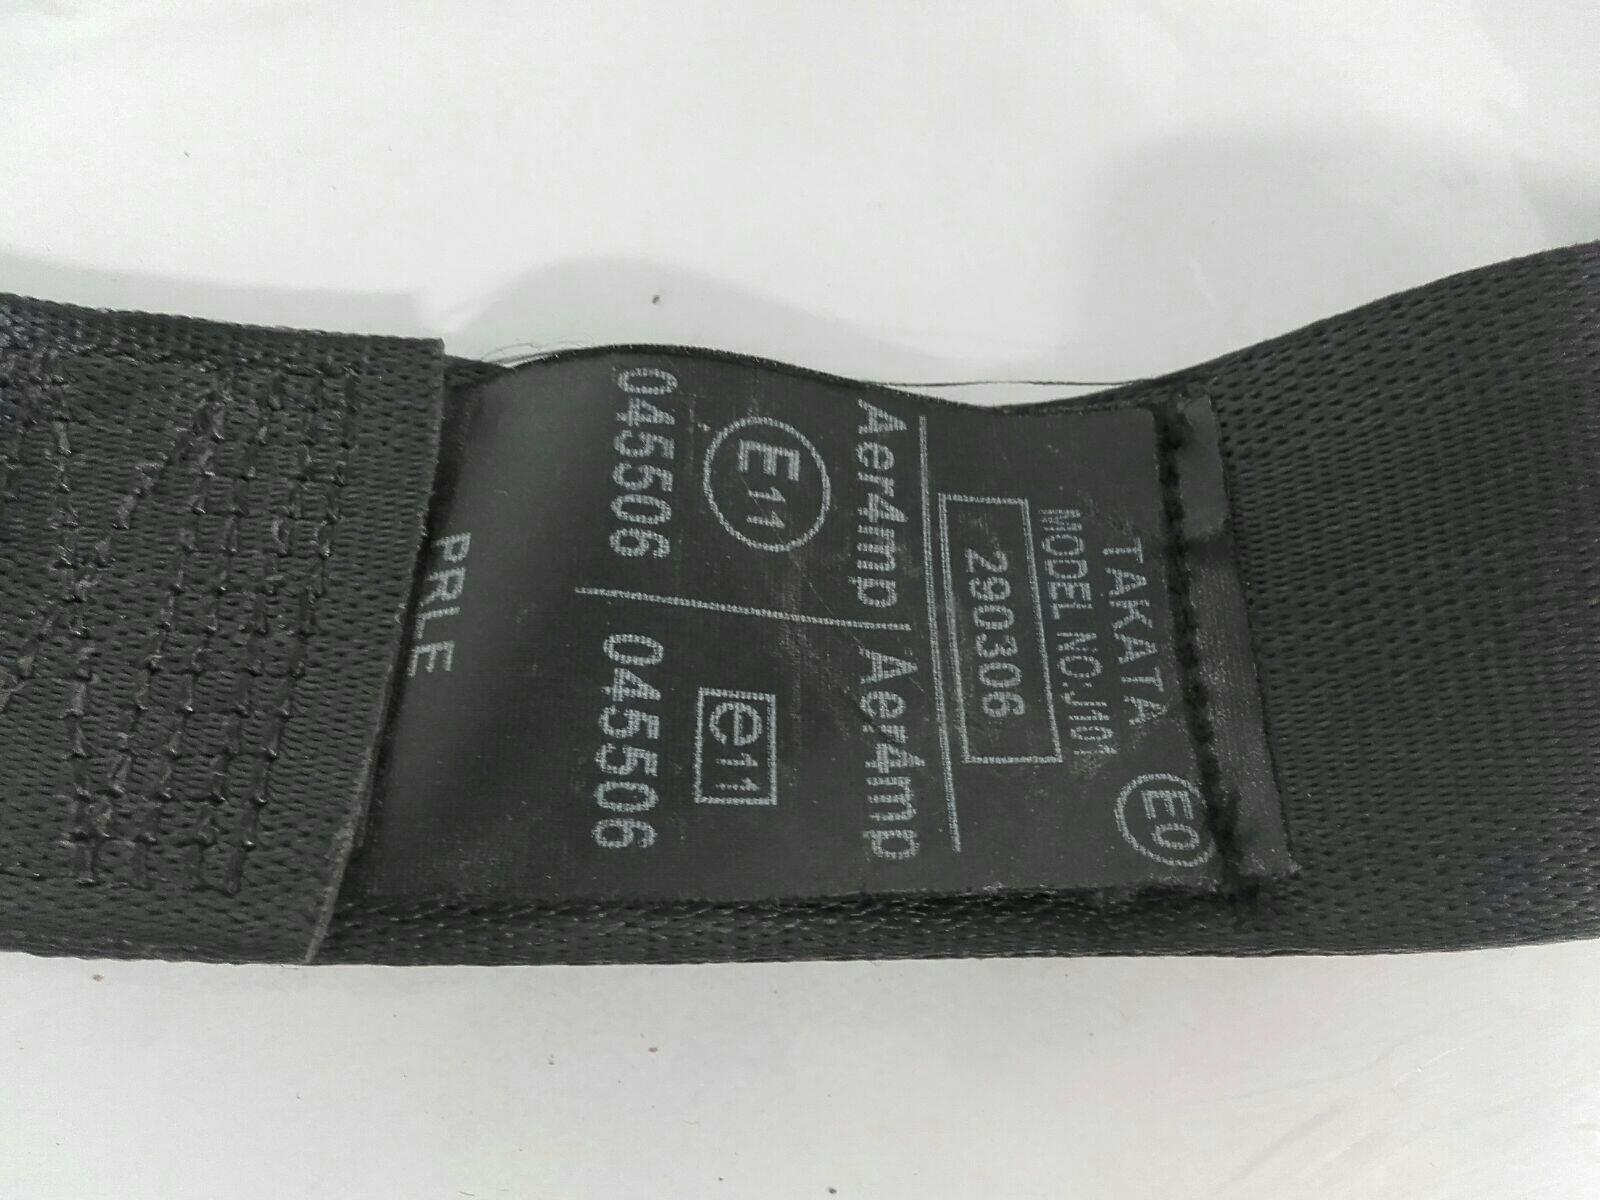 SEAT BELT Honda Civic 2006 To 2010 5 Door Hatchback O/S/R & WARRANTY - 7314730